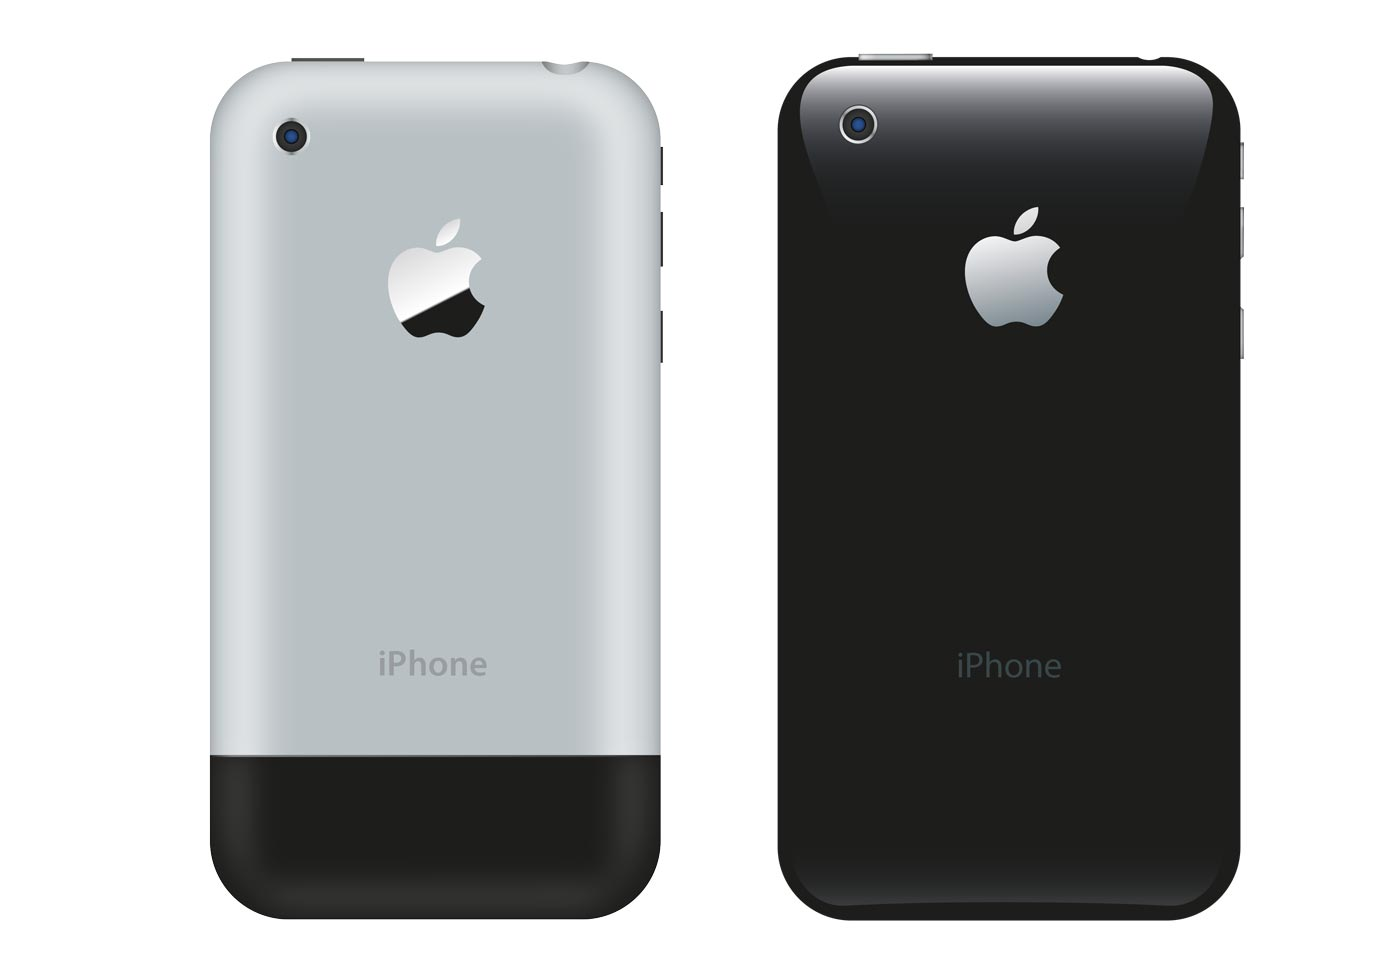 iPhone - Rear view - Download Free Vector Art, Stock ...